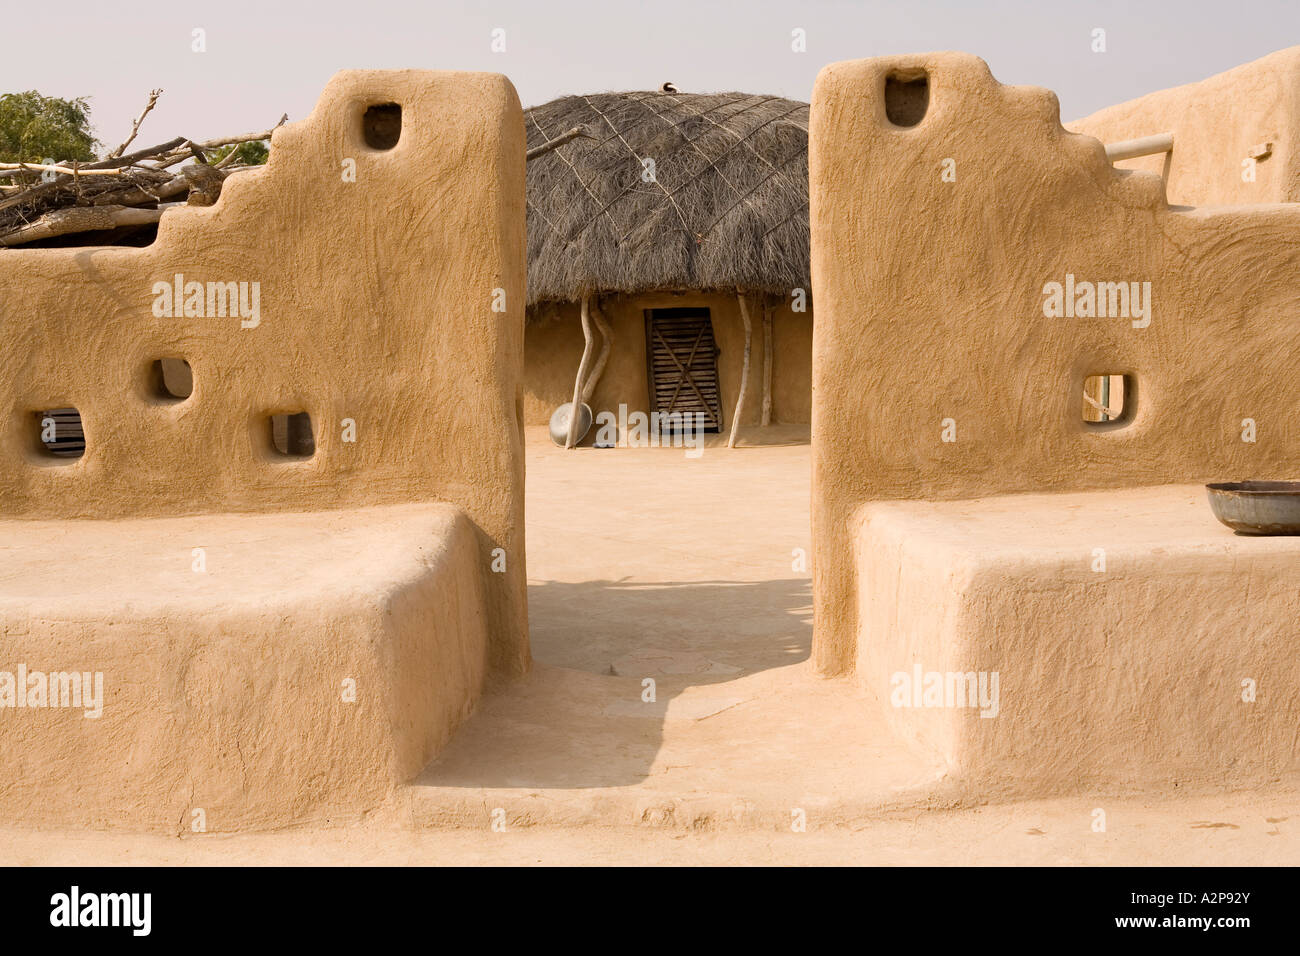 India rajasthan thar desert village architecture decorated for Mud house design